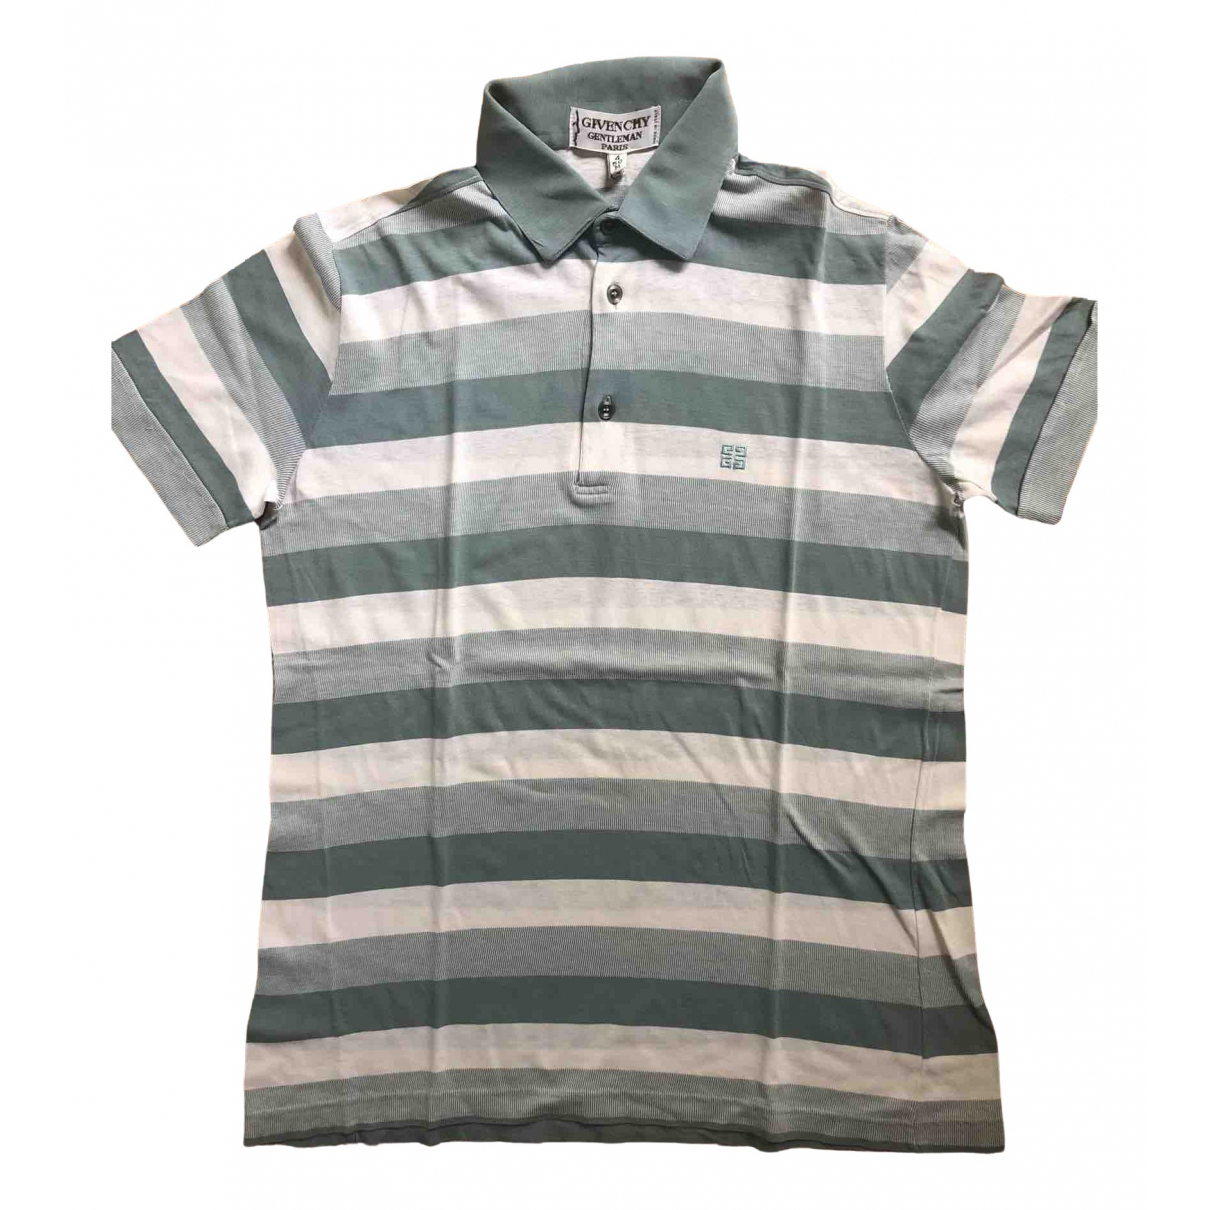 Givenchy N Green Cotton Polo shirts for Men M International